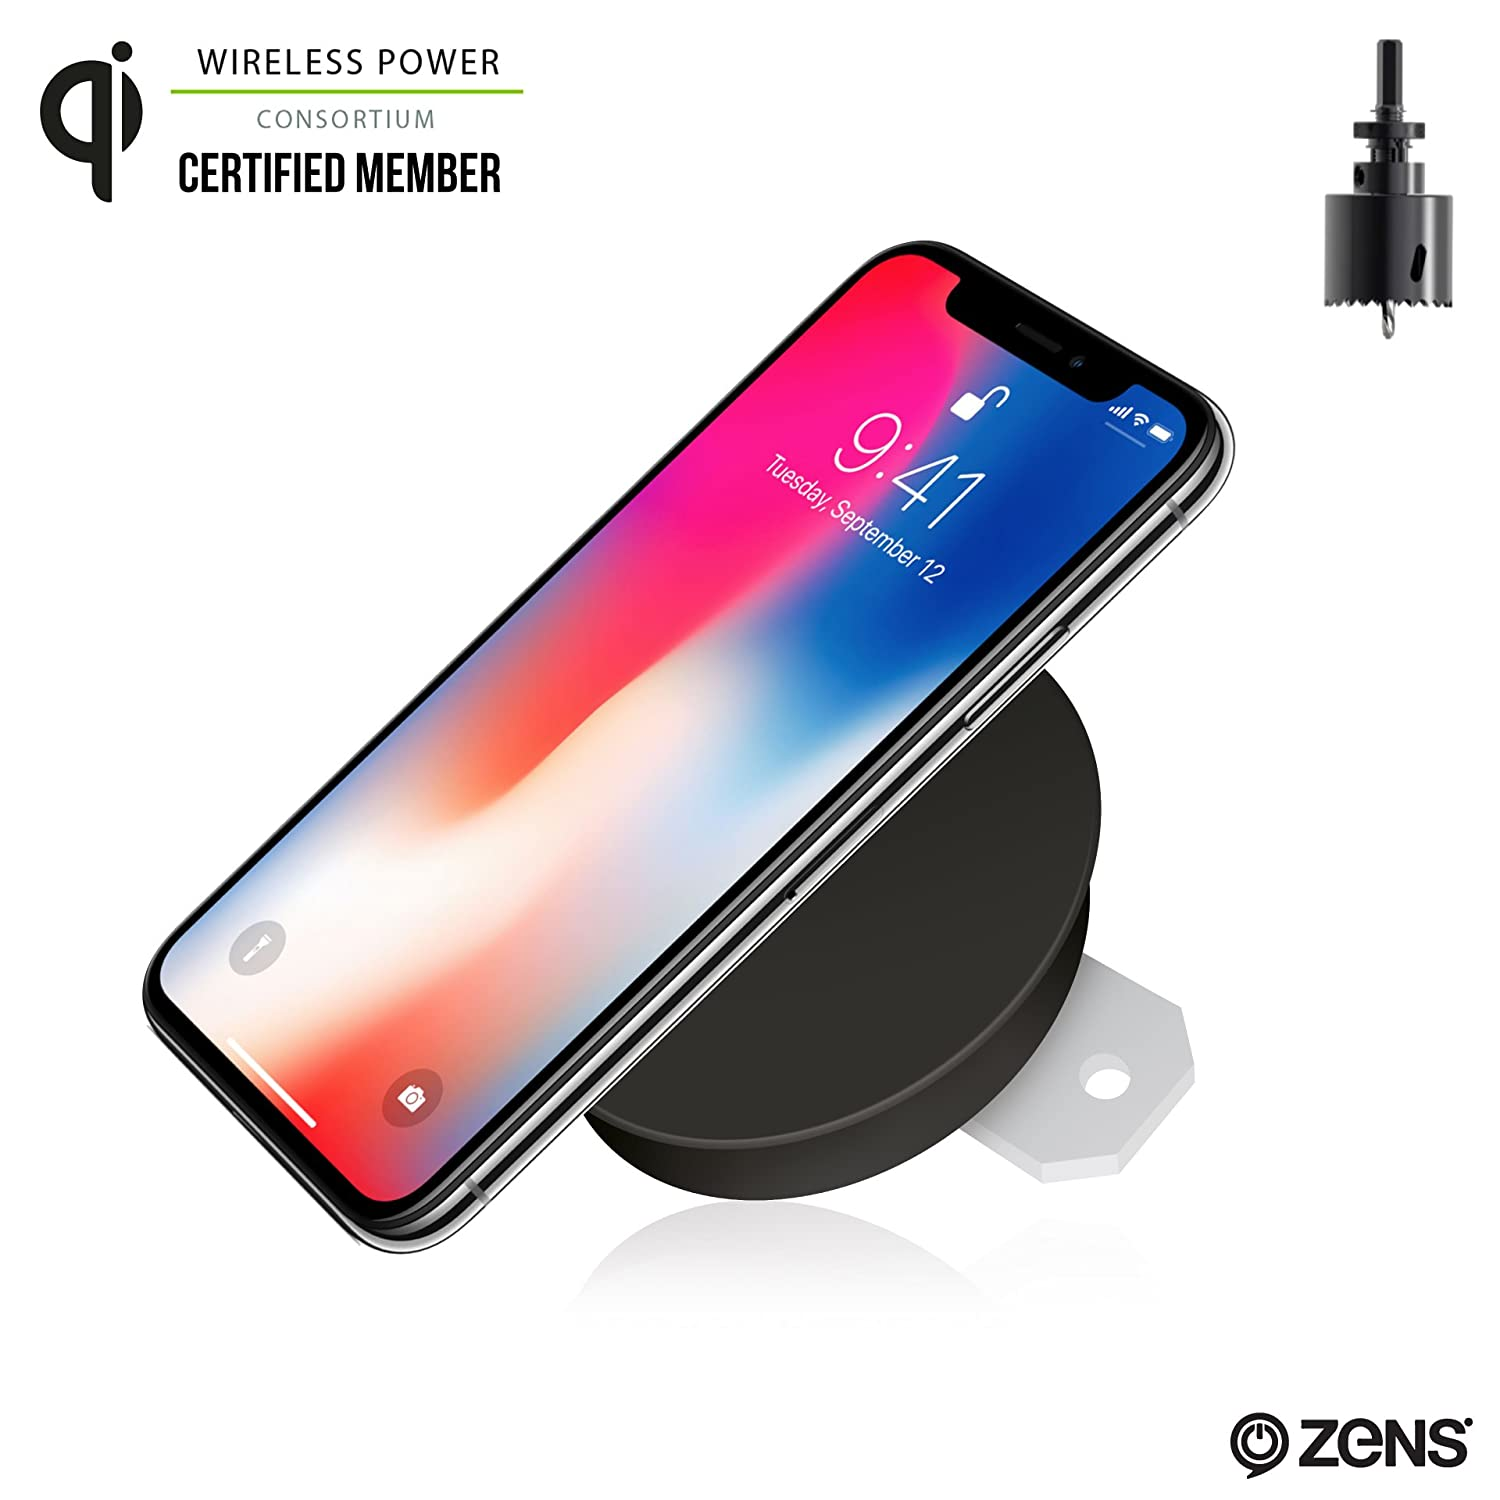 Reliable Round Universal Mobile Phone Wireless Charger Portable Wireless Fast Charger With Led Soft Light Indicator Accessories & Parts